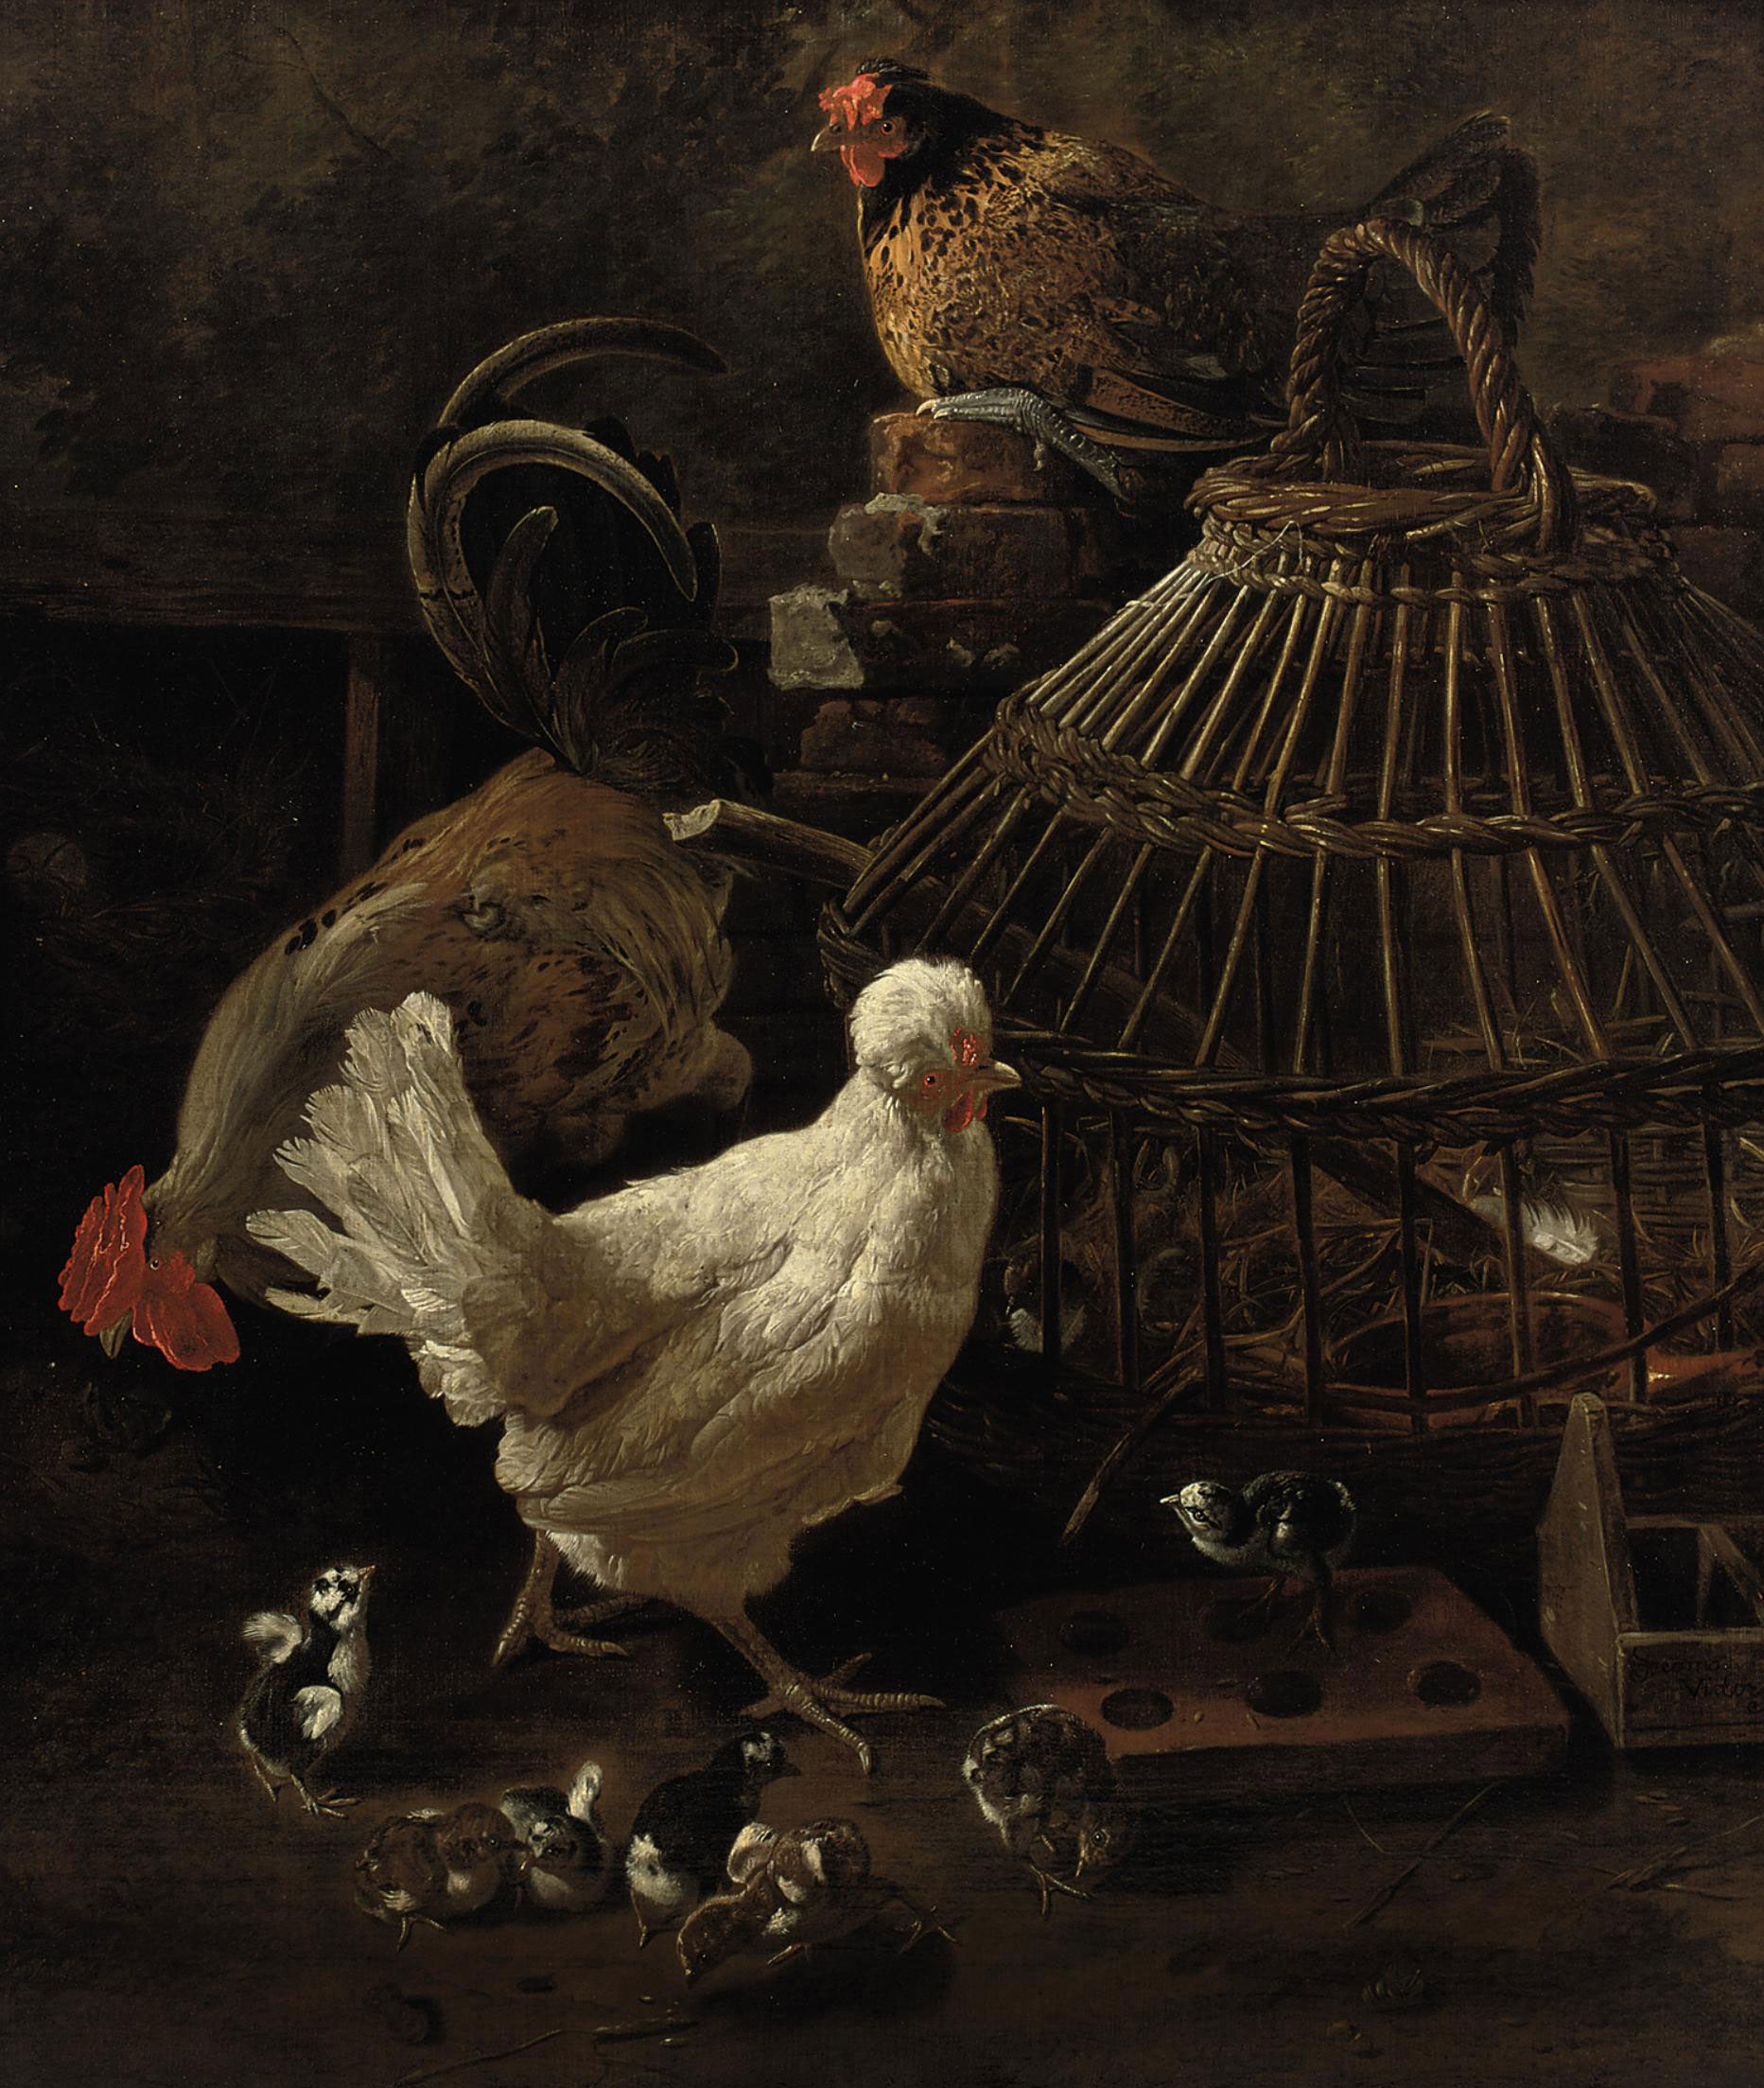 Three hens with chicks near a reed cage